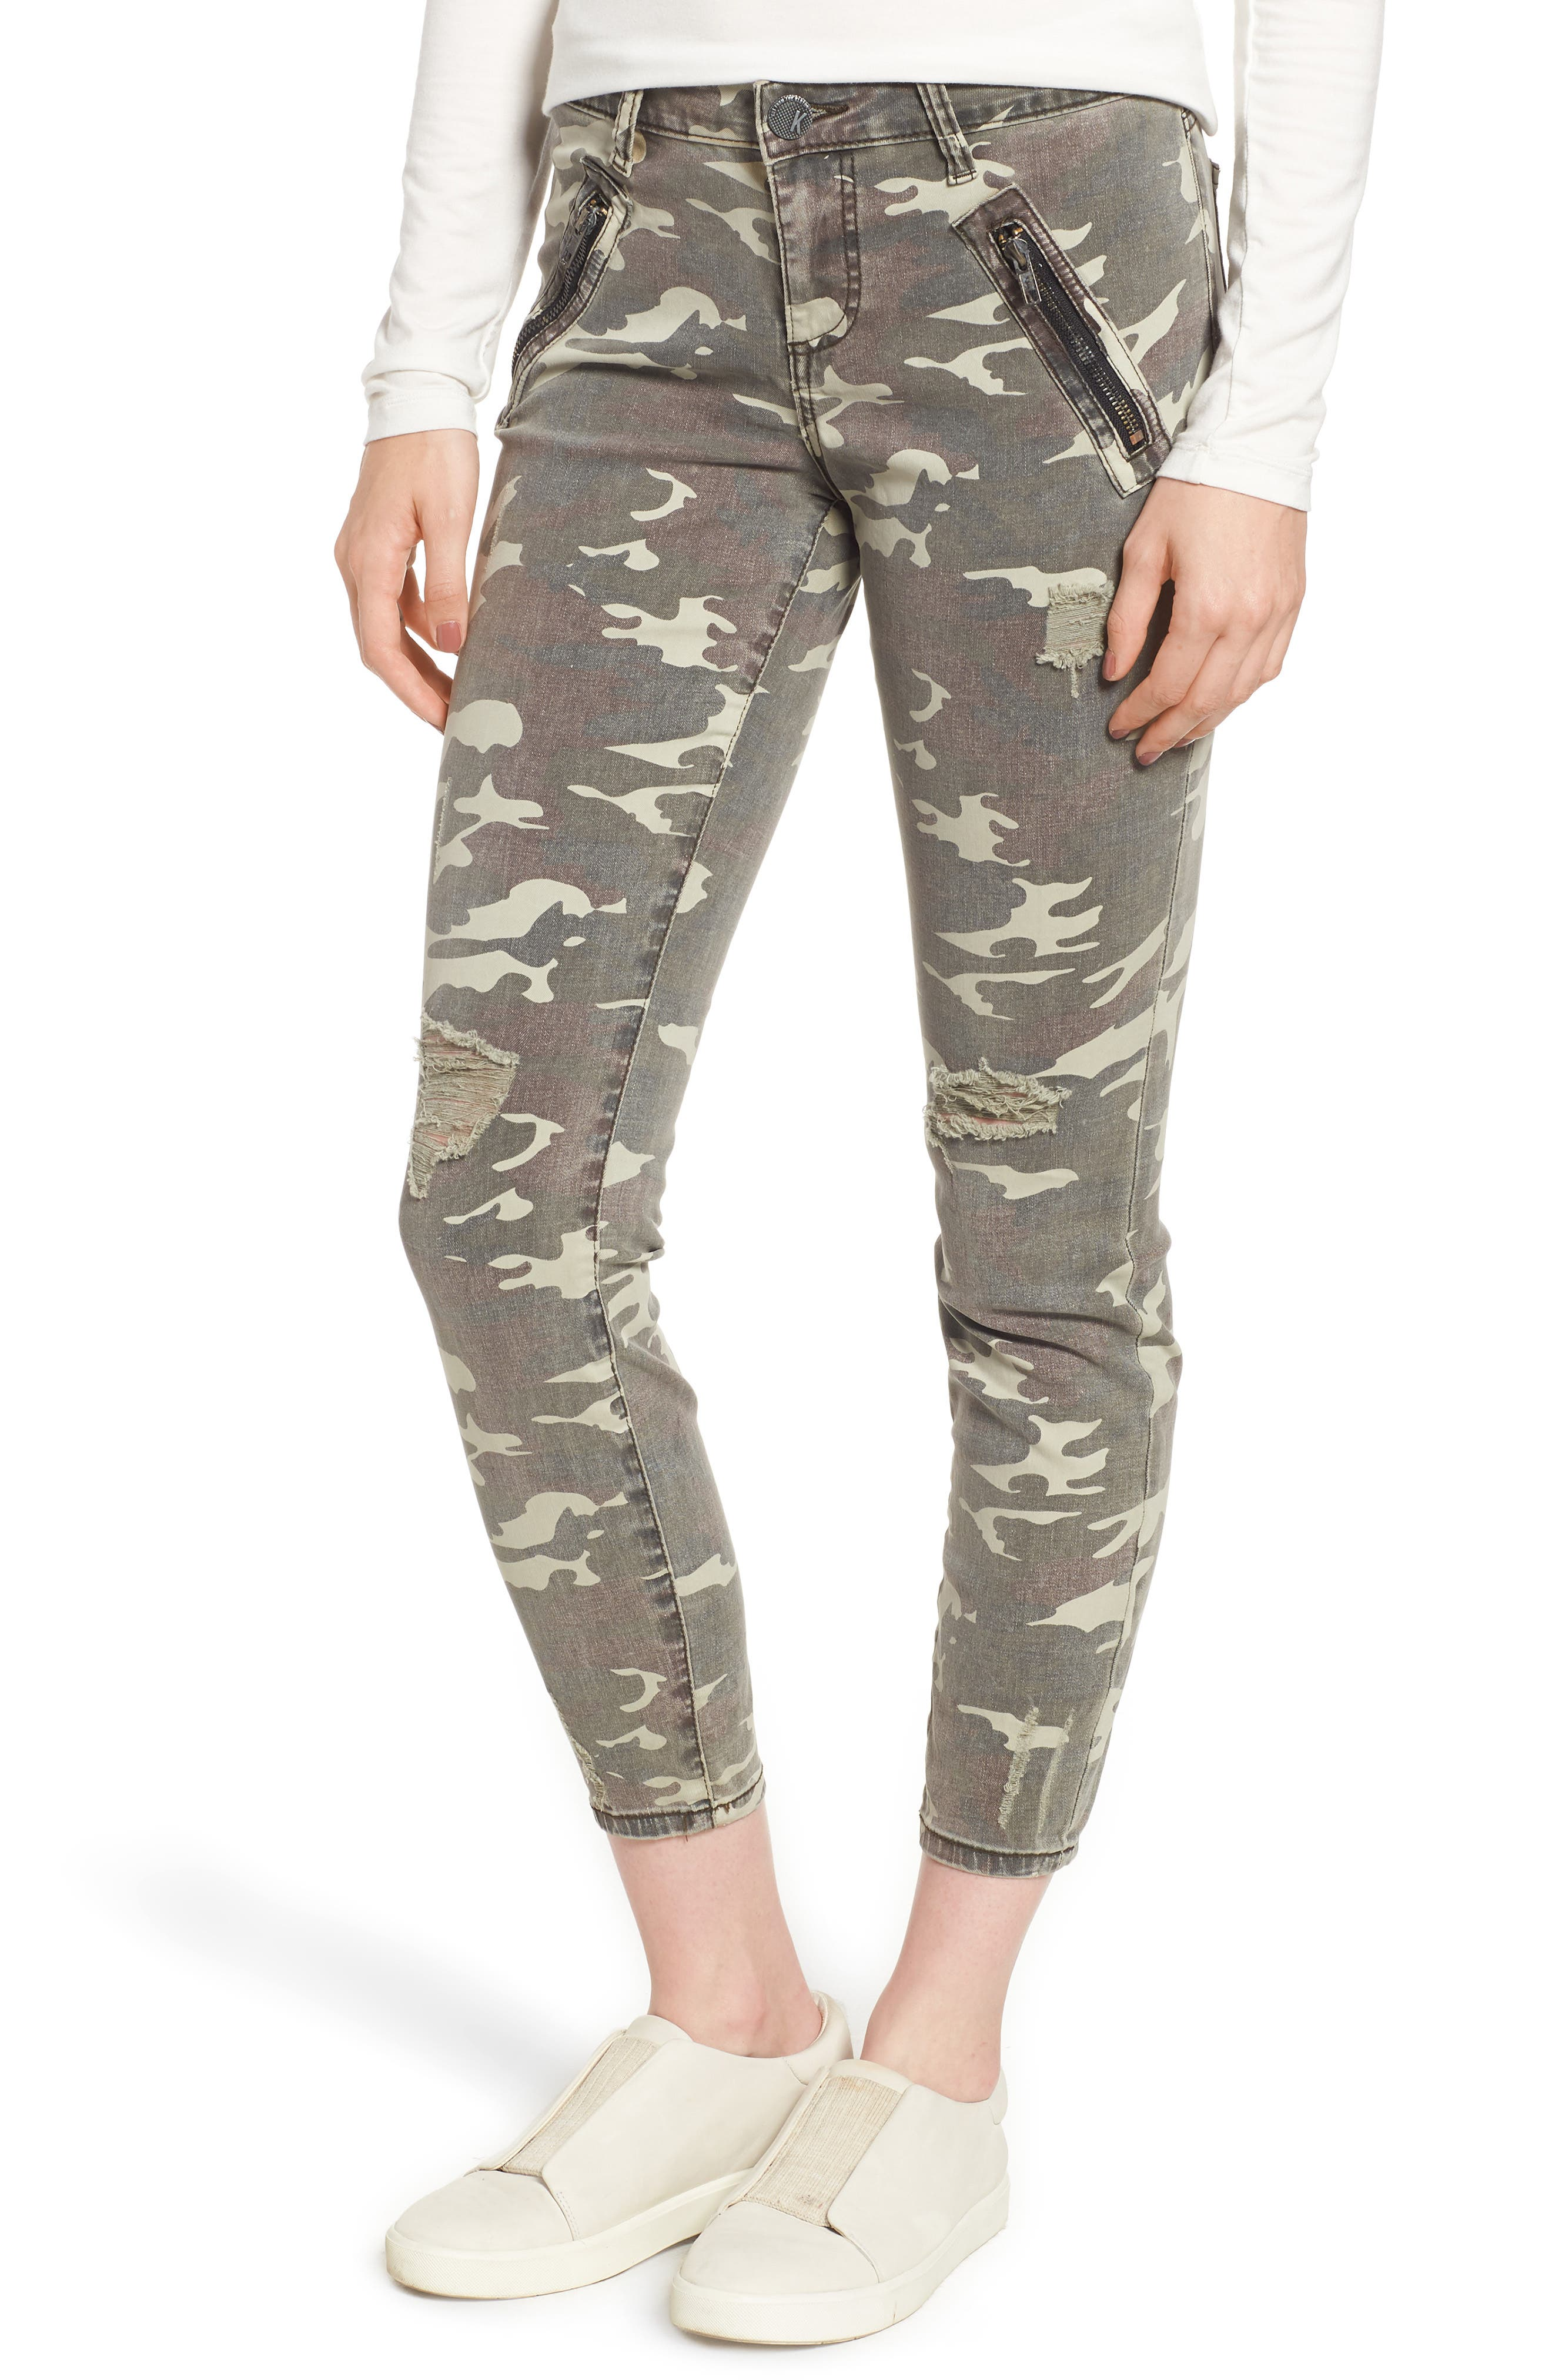 KUT FROM THE KLOTH, Connie Ankle Skinny Camo Jeans, Main thumbnail 1, color, 317